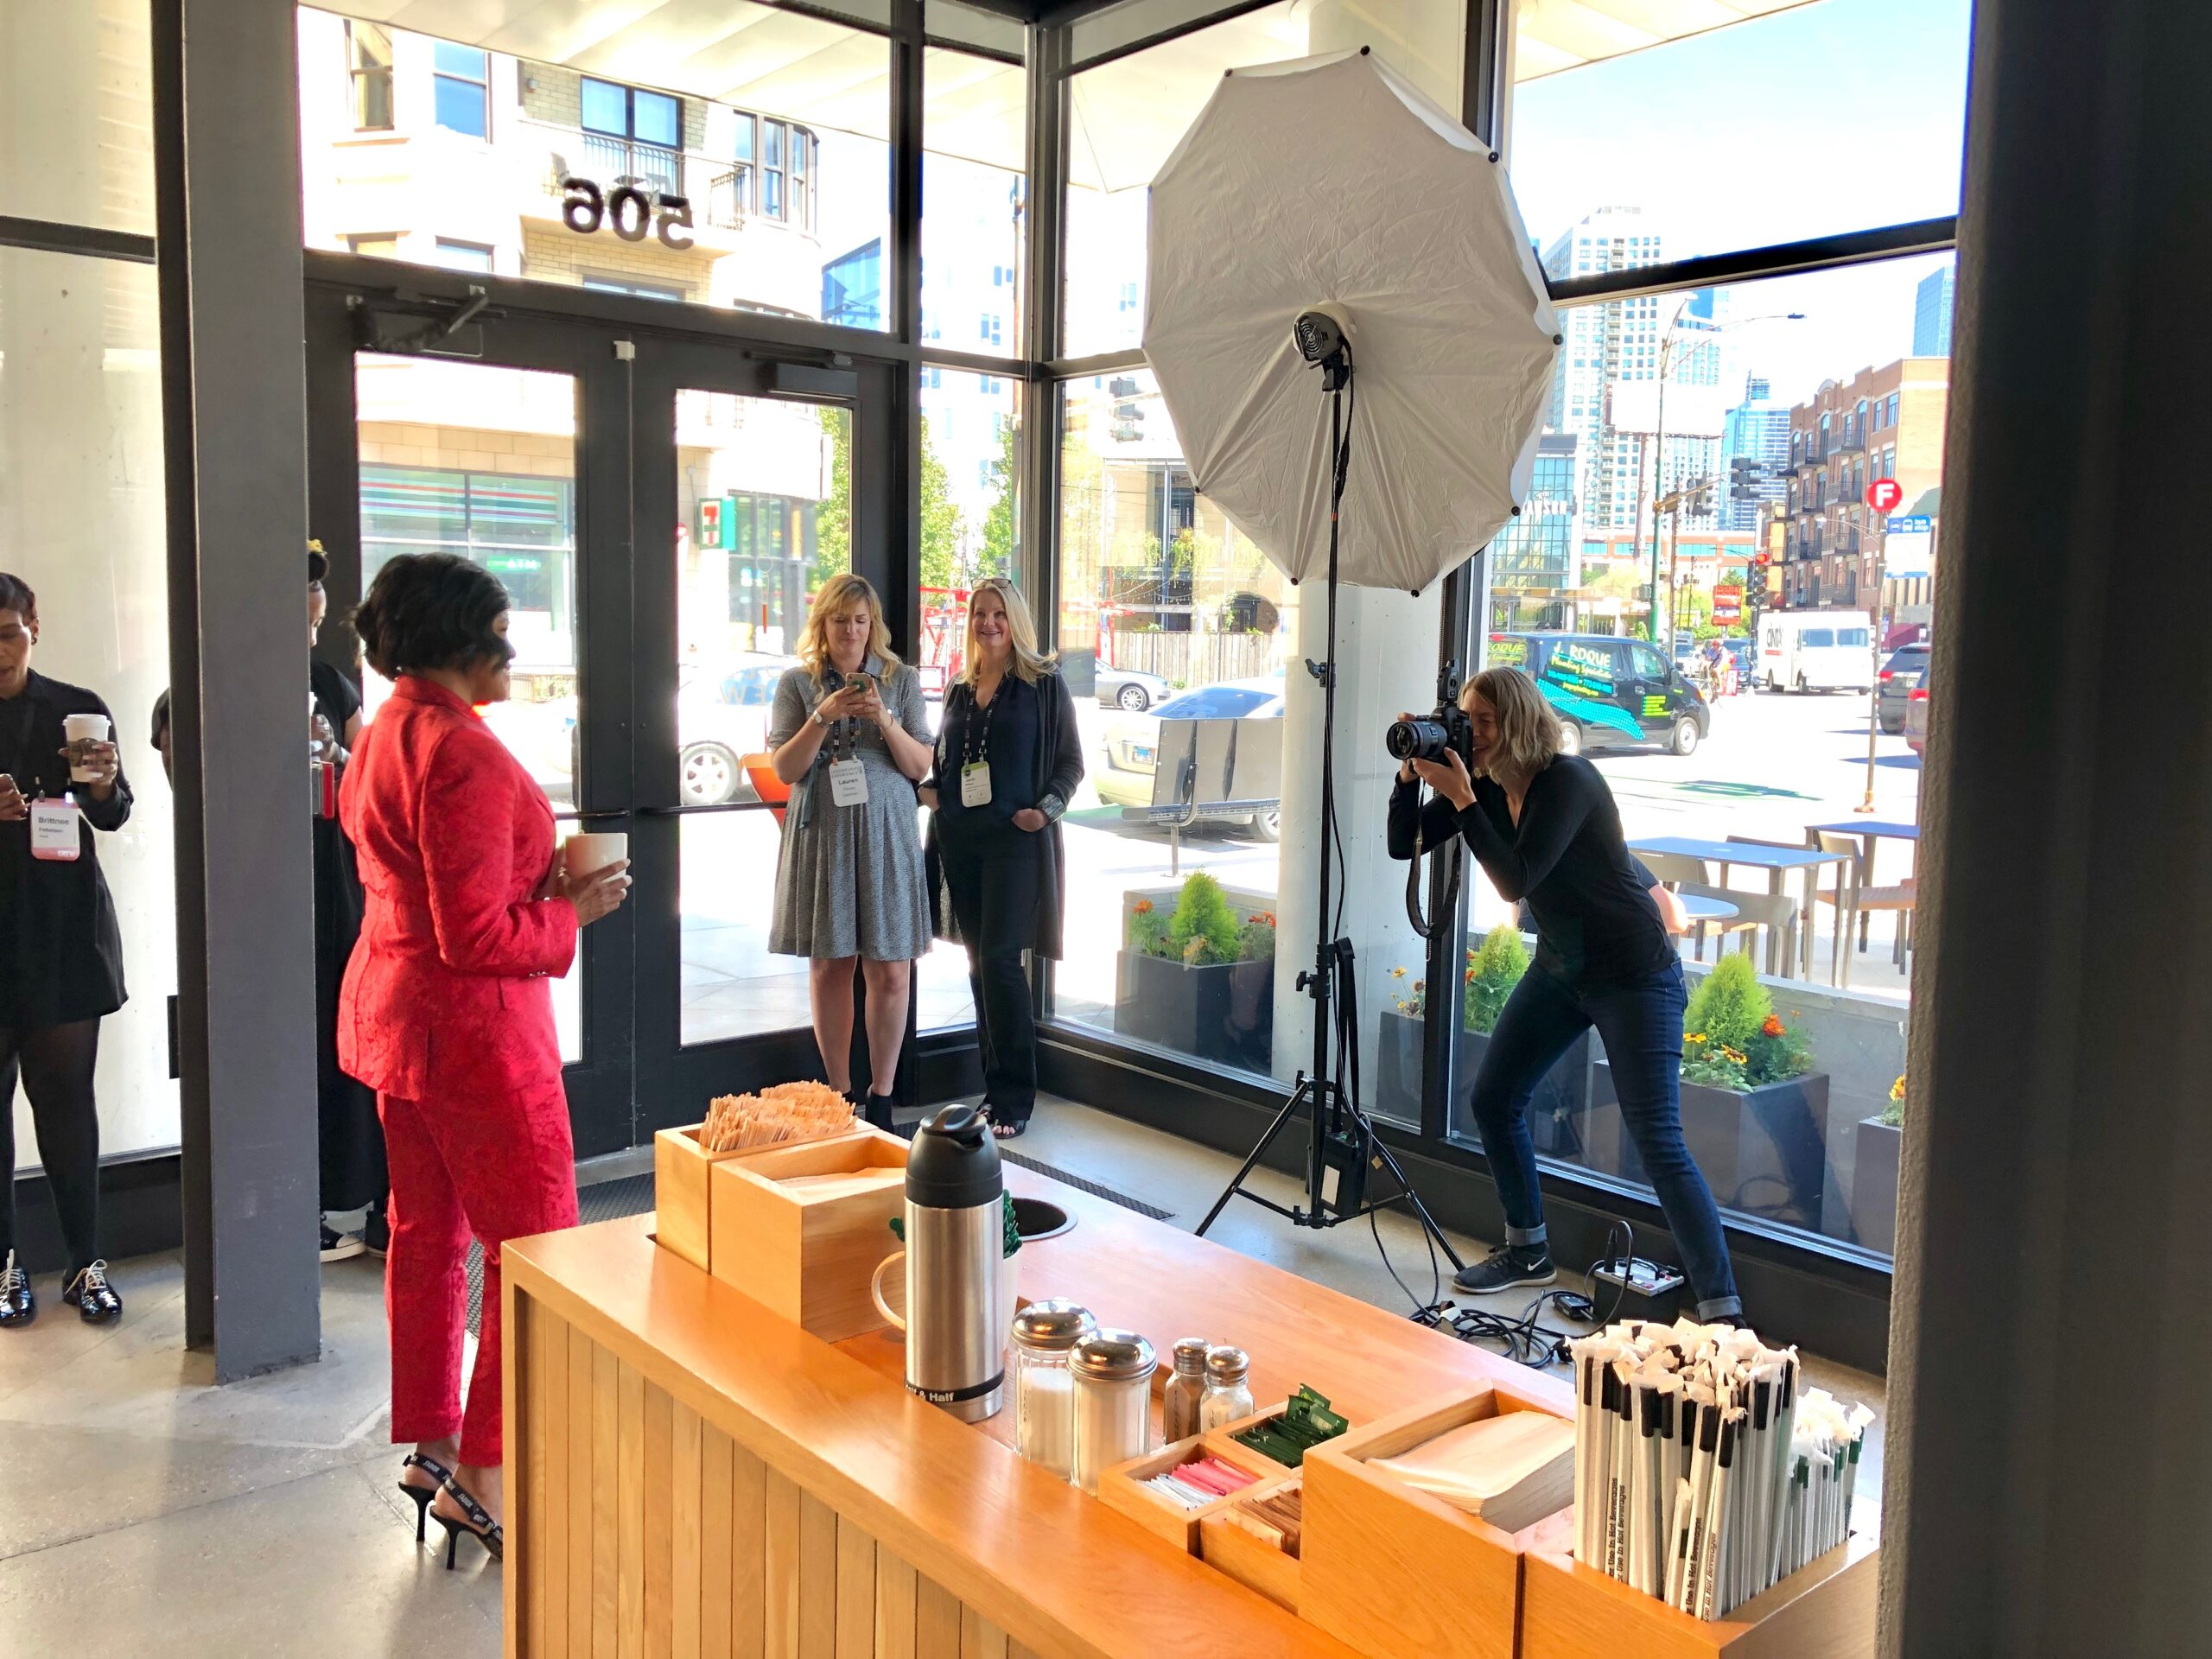 Behind the scenes shot shows Sara Stathas as she photographs Starbucks COO Roz Brewer